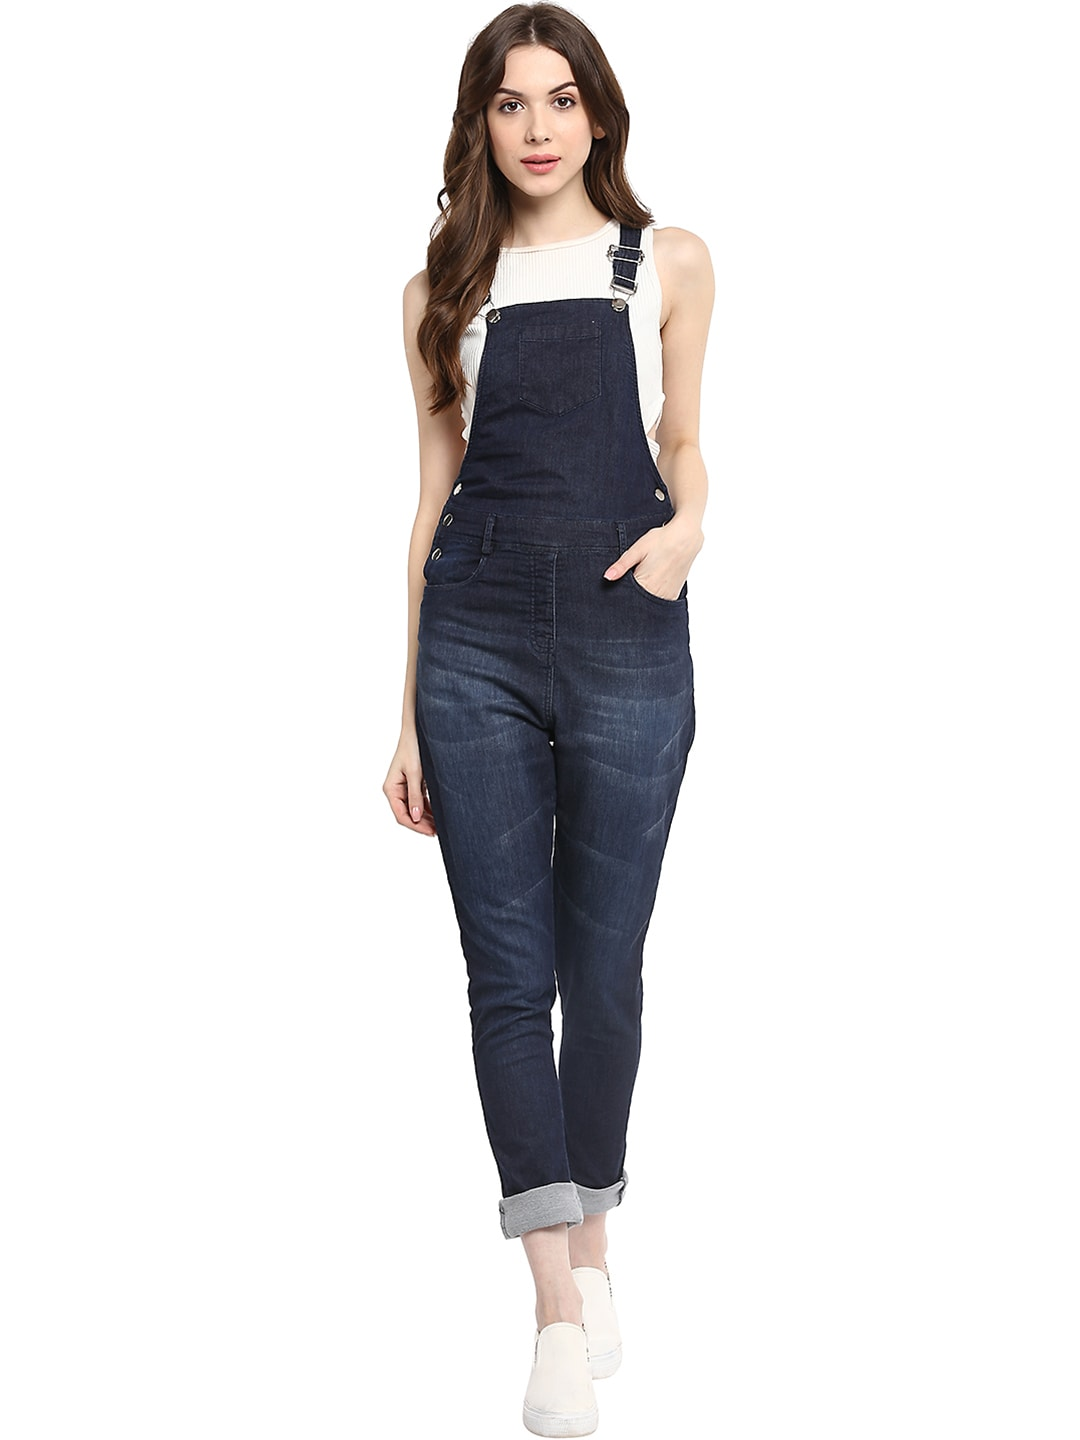 8430a3f0c10a Dresses And Jumpsuits - Buy Dresses And Jumpsuits online in India - Myntra